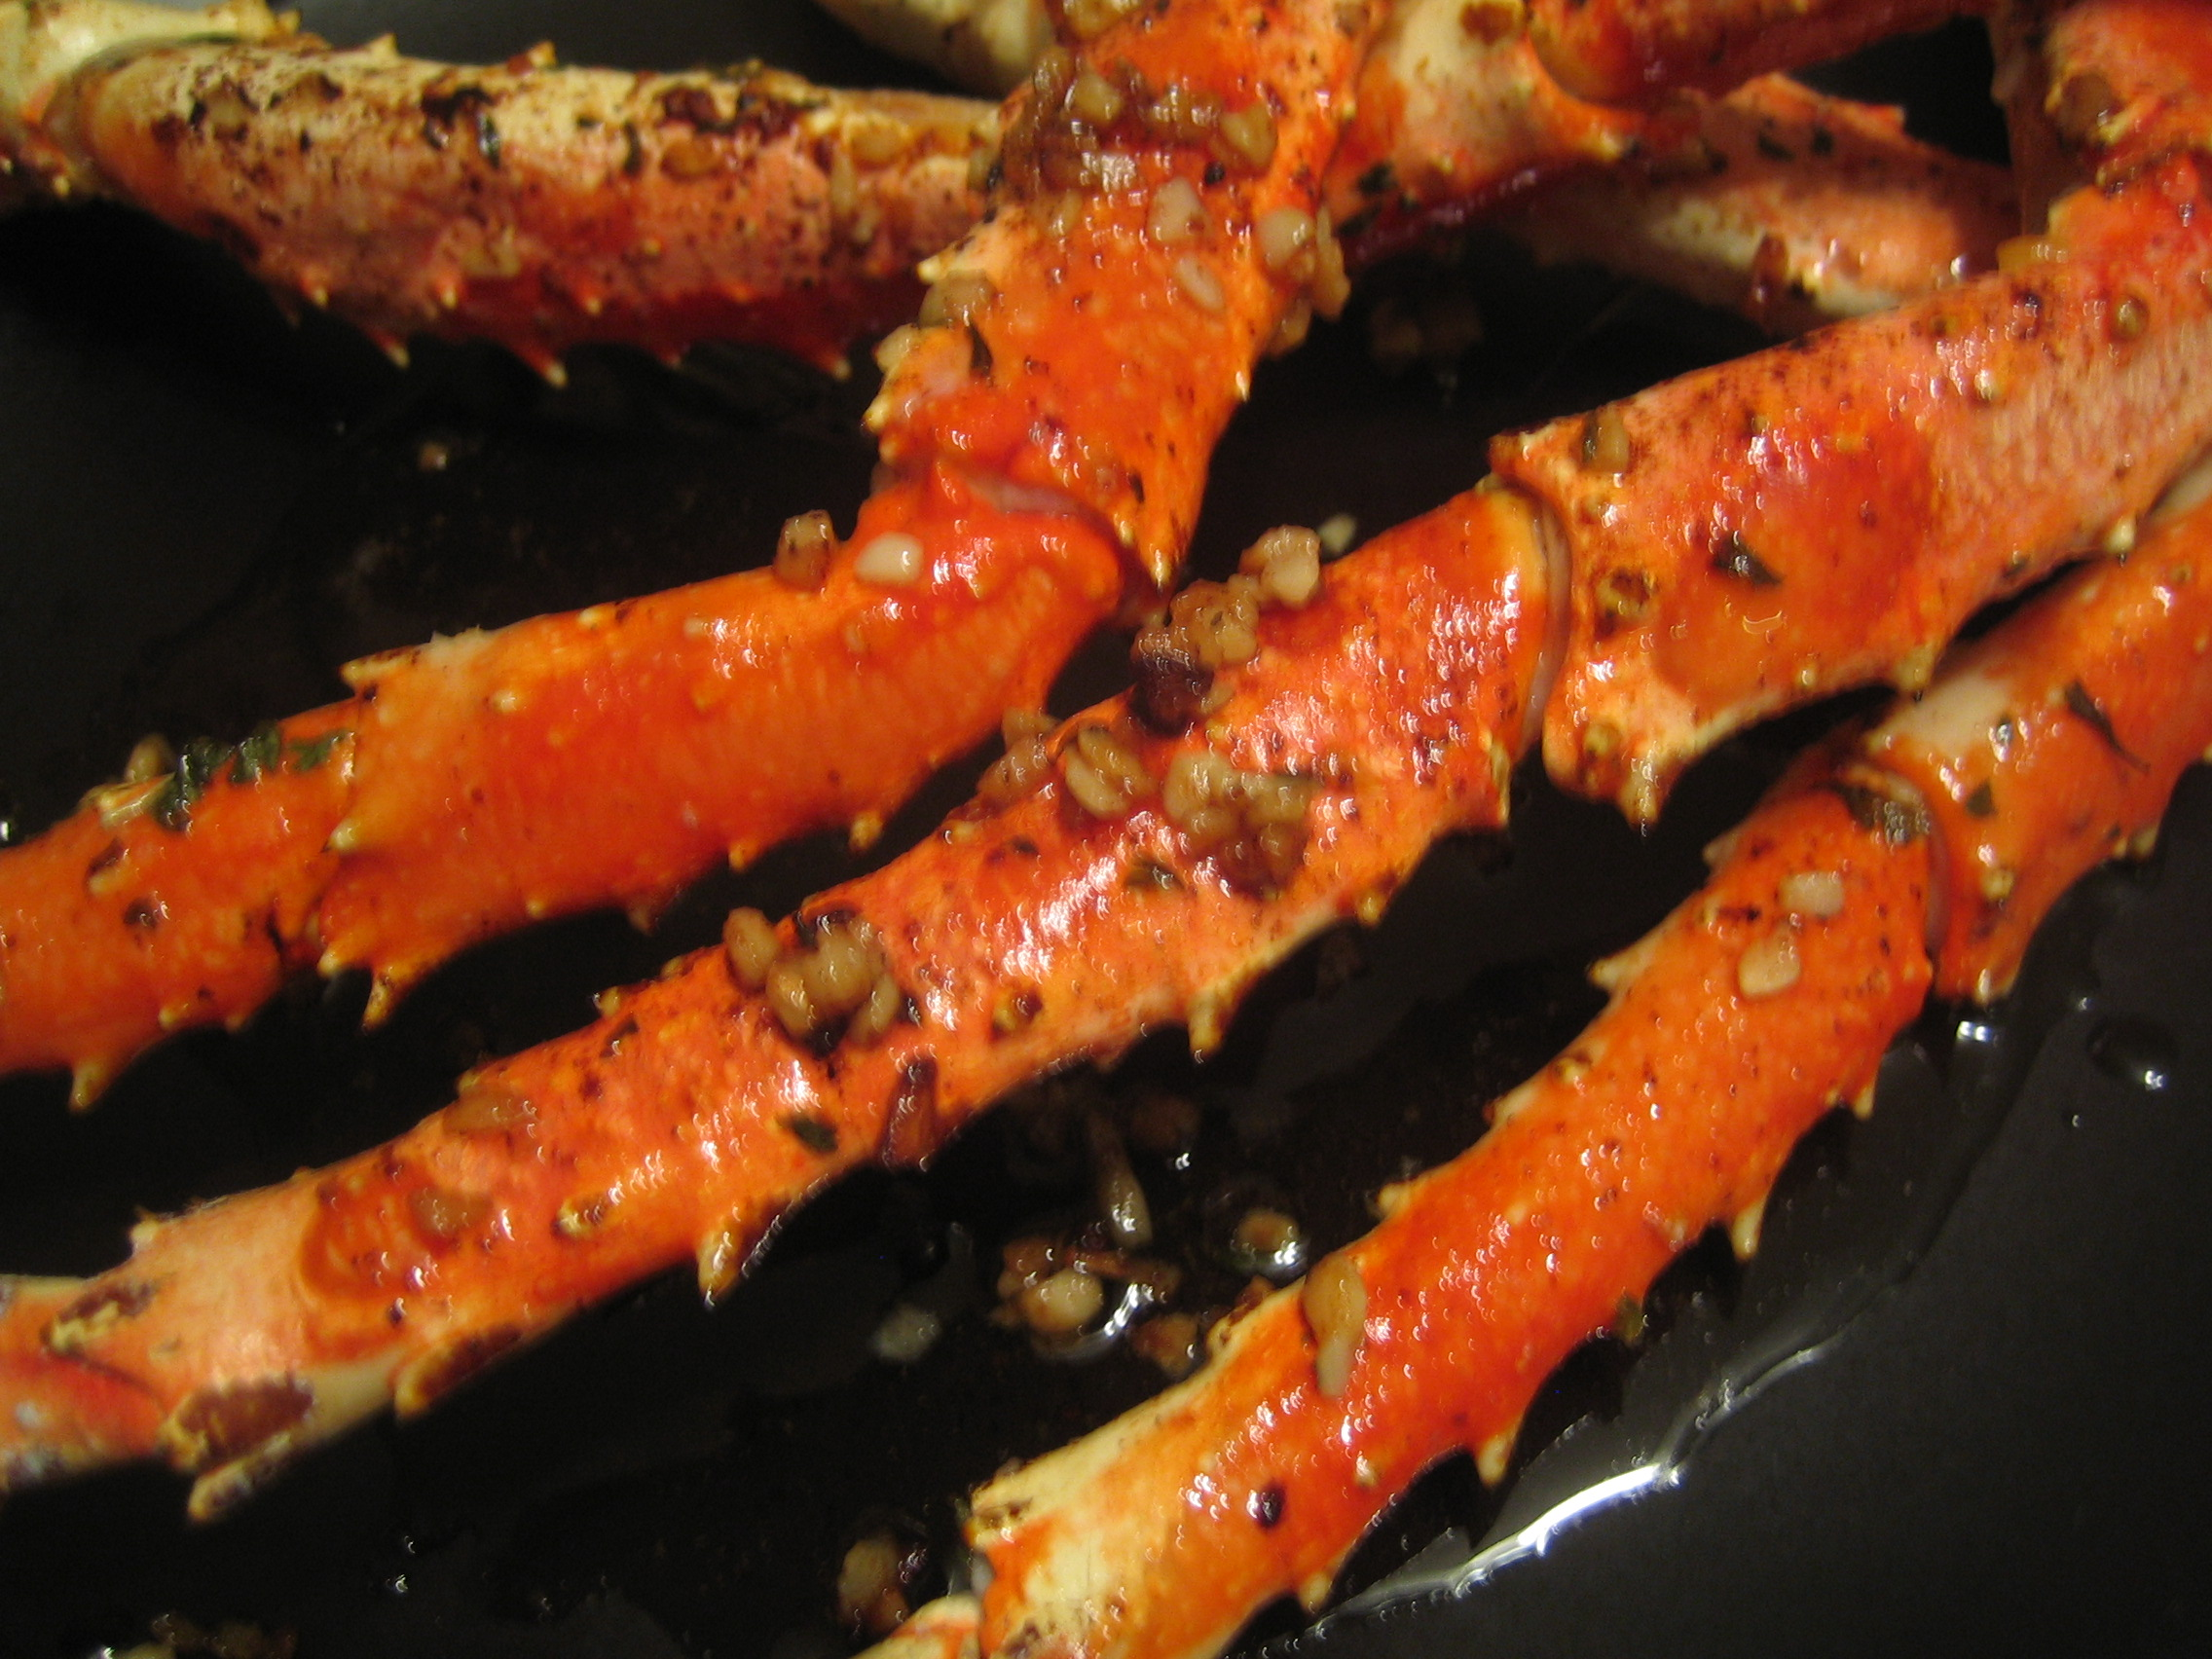 Crabs – Garlic Butter Baked Crab Legs